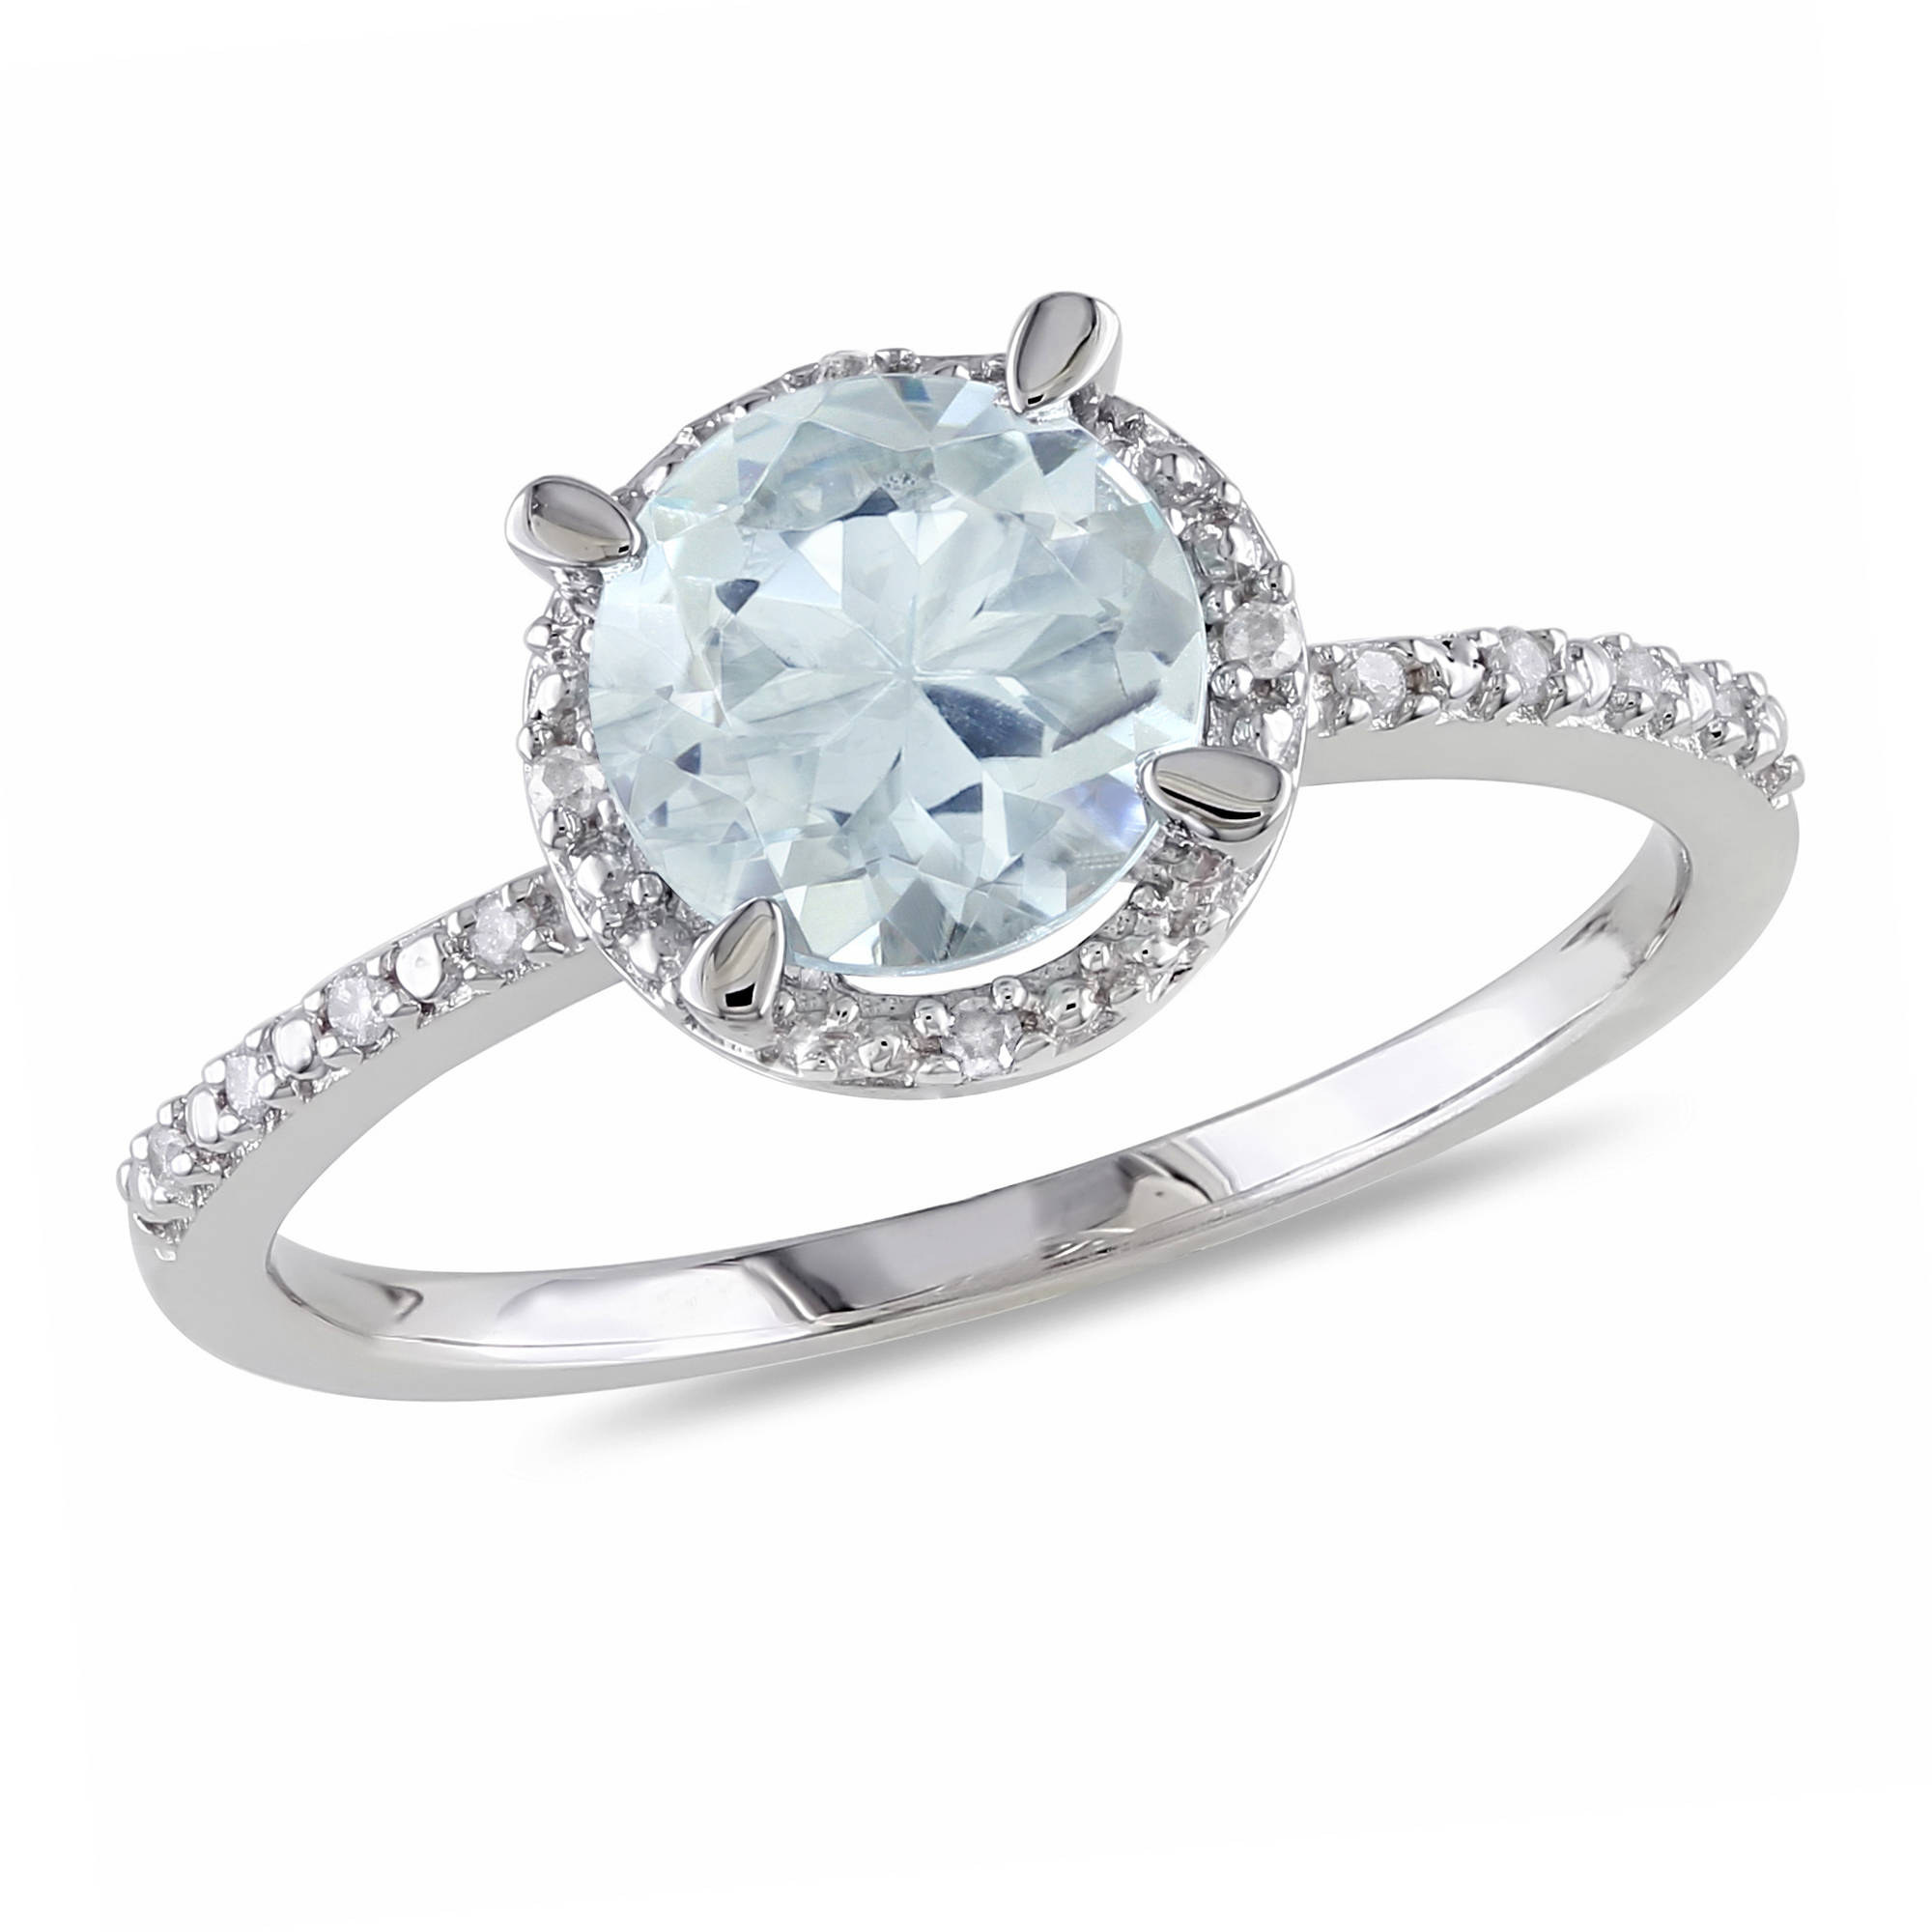 Tangelo 1-1/7 Carat T.G.W. Aquamarine and Diamond-Accent Sterling Silver Halo Ring